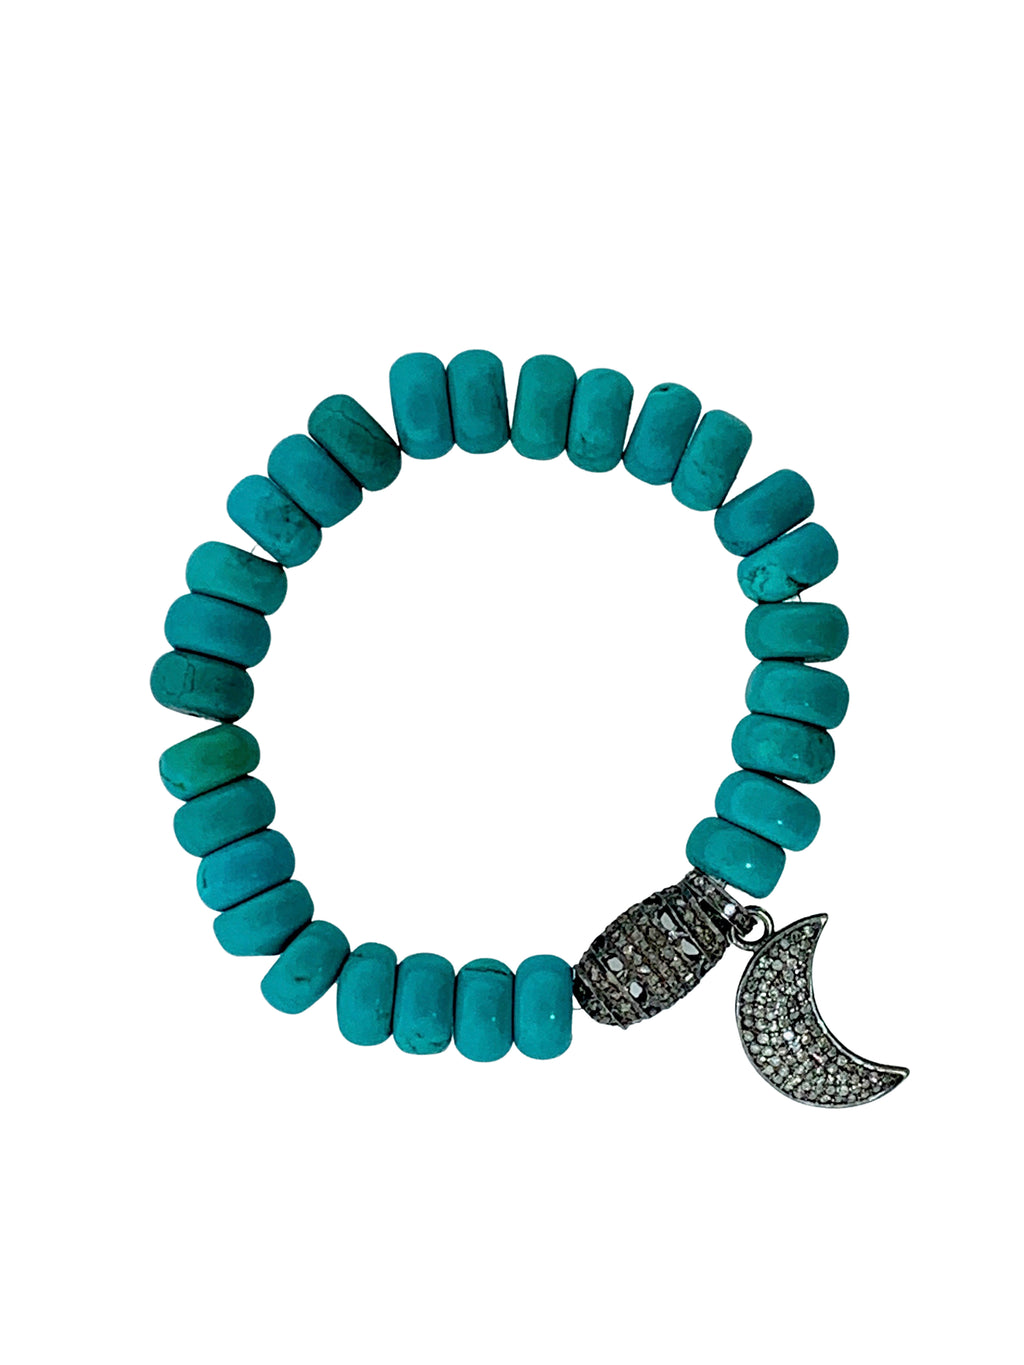 Turquoise Beads with Pave Diamond Bead and Moon